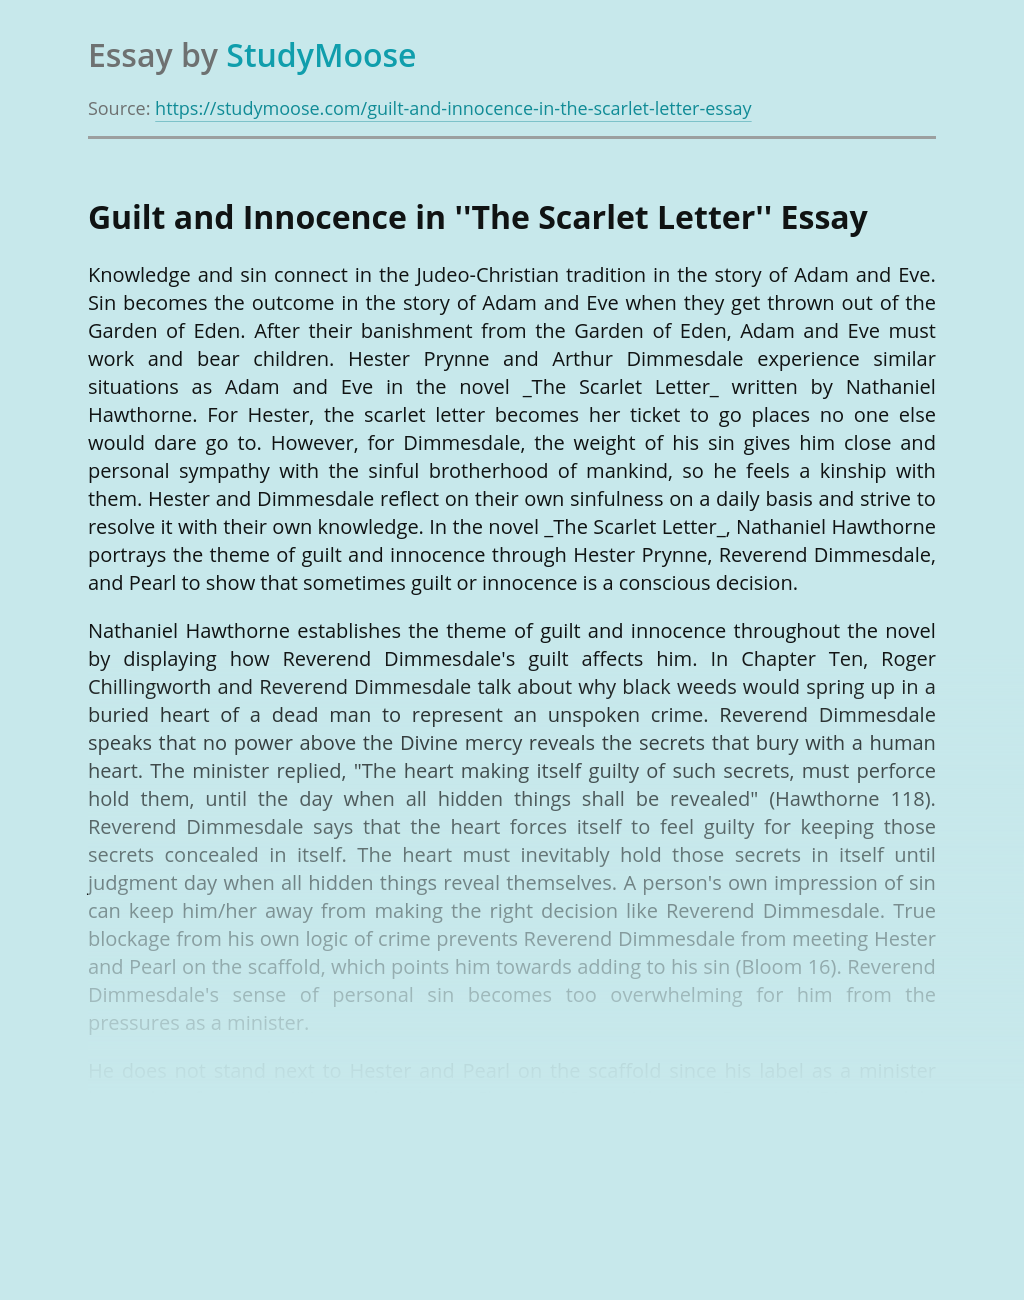 Guilt and Innocence in ''The Scarlet Letter''